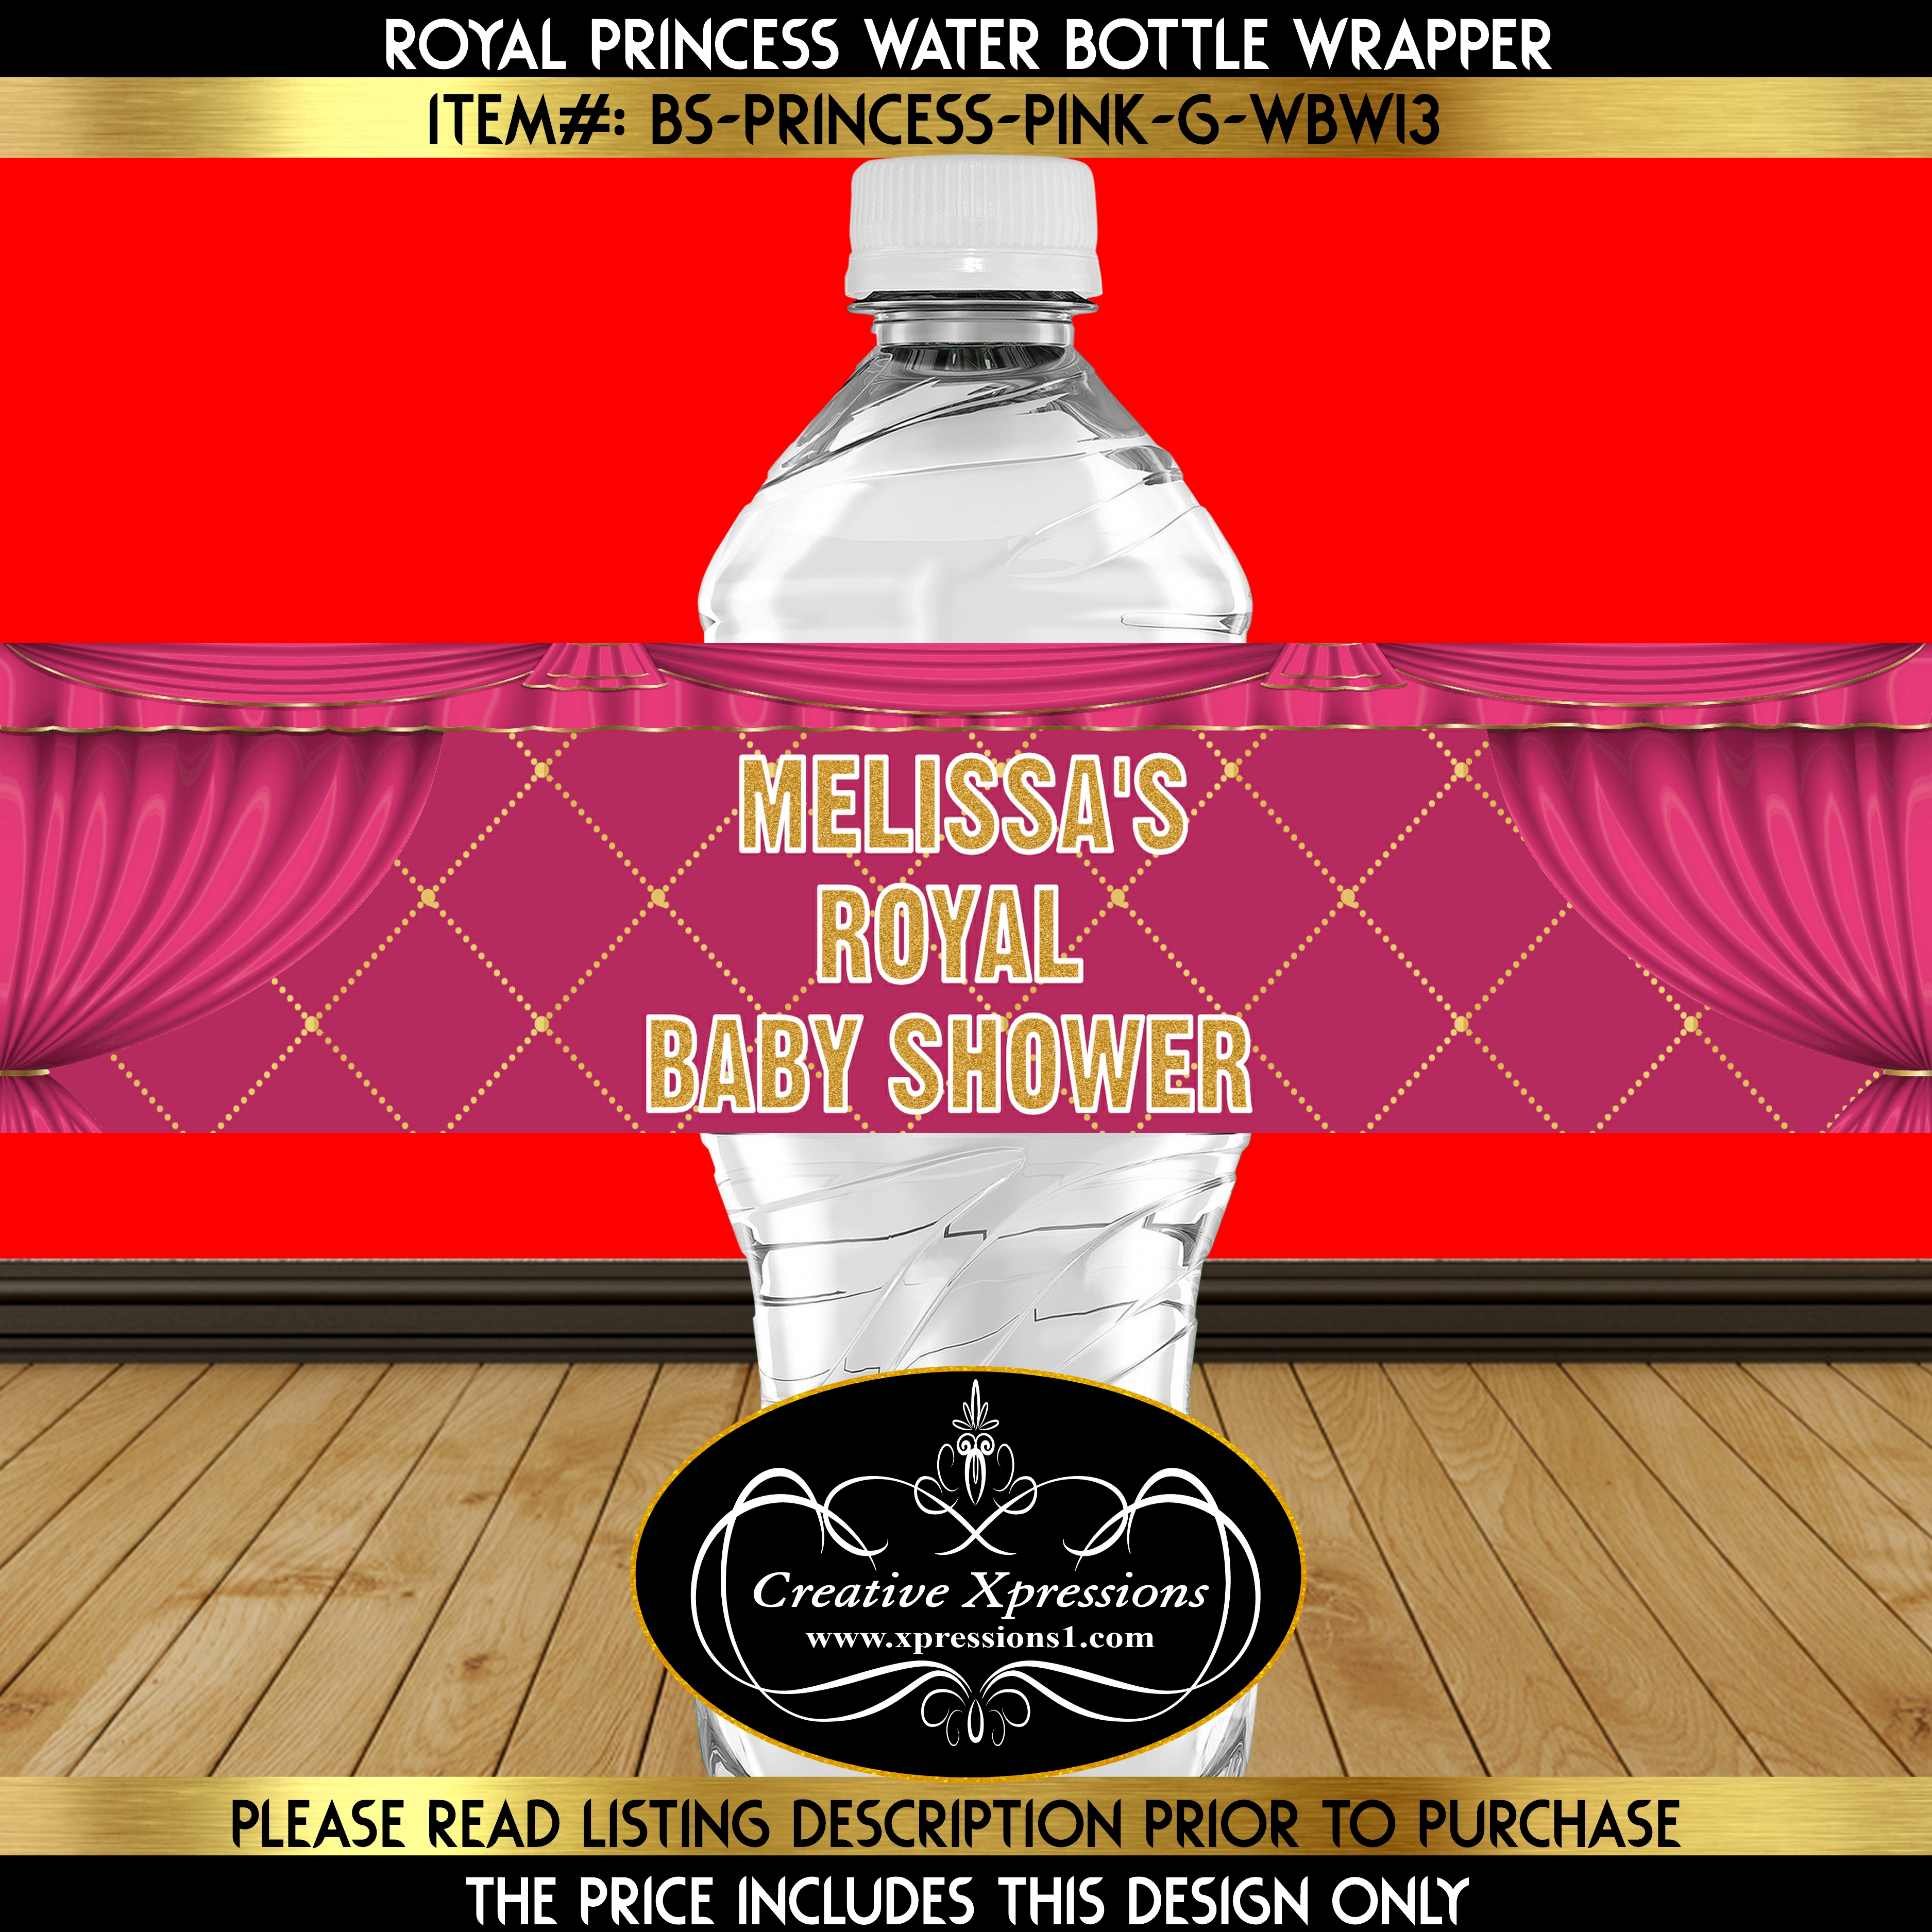 Hot Pink and Gold Water Bottle Wrapper